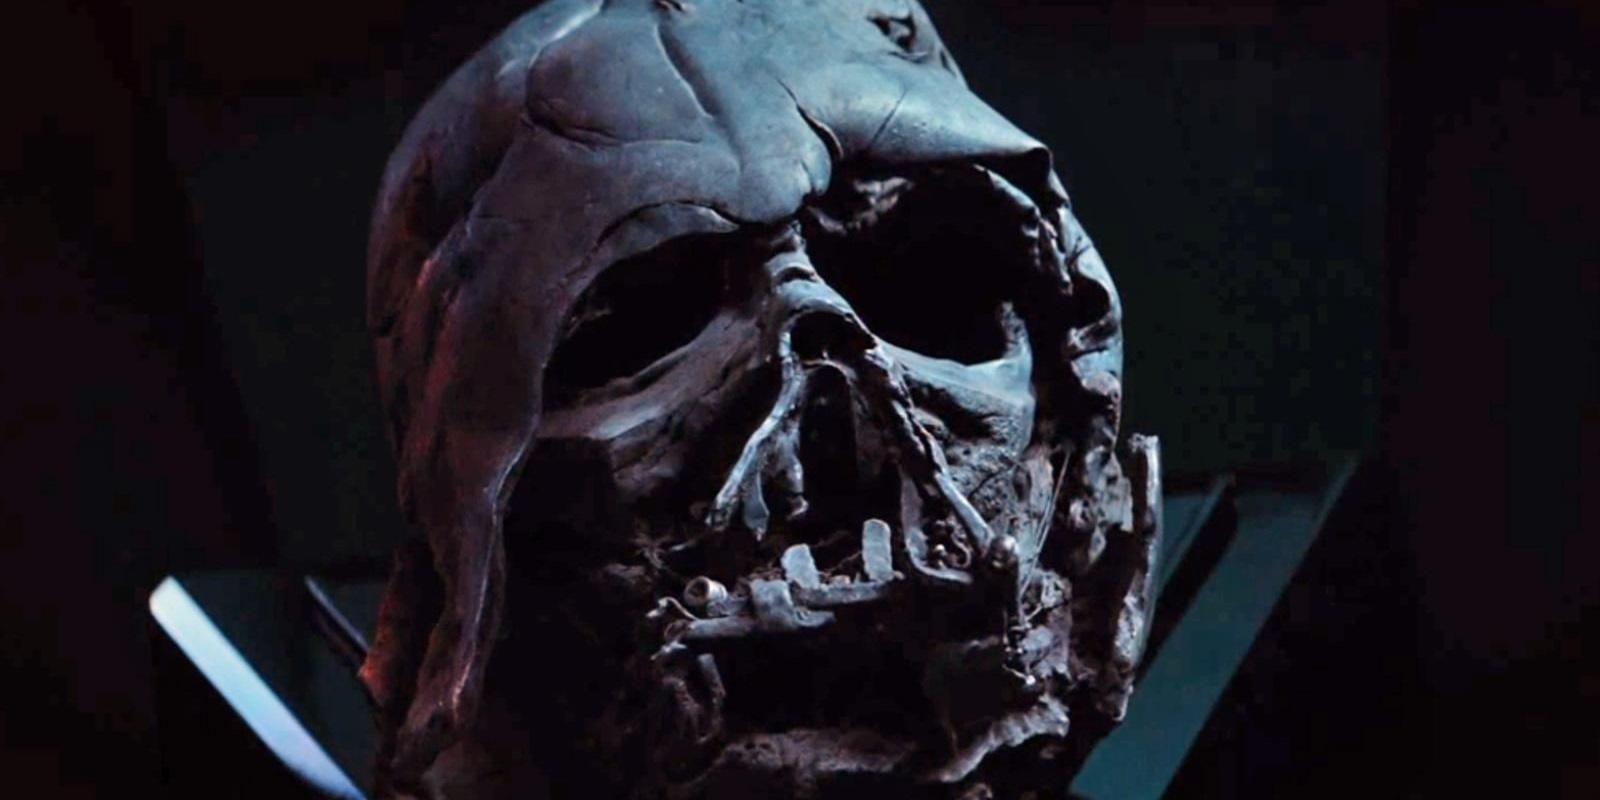 darth sidious and vader relationship questions